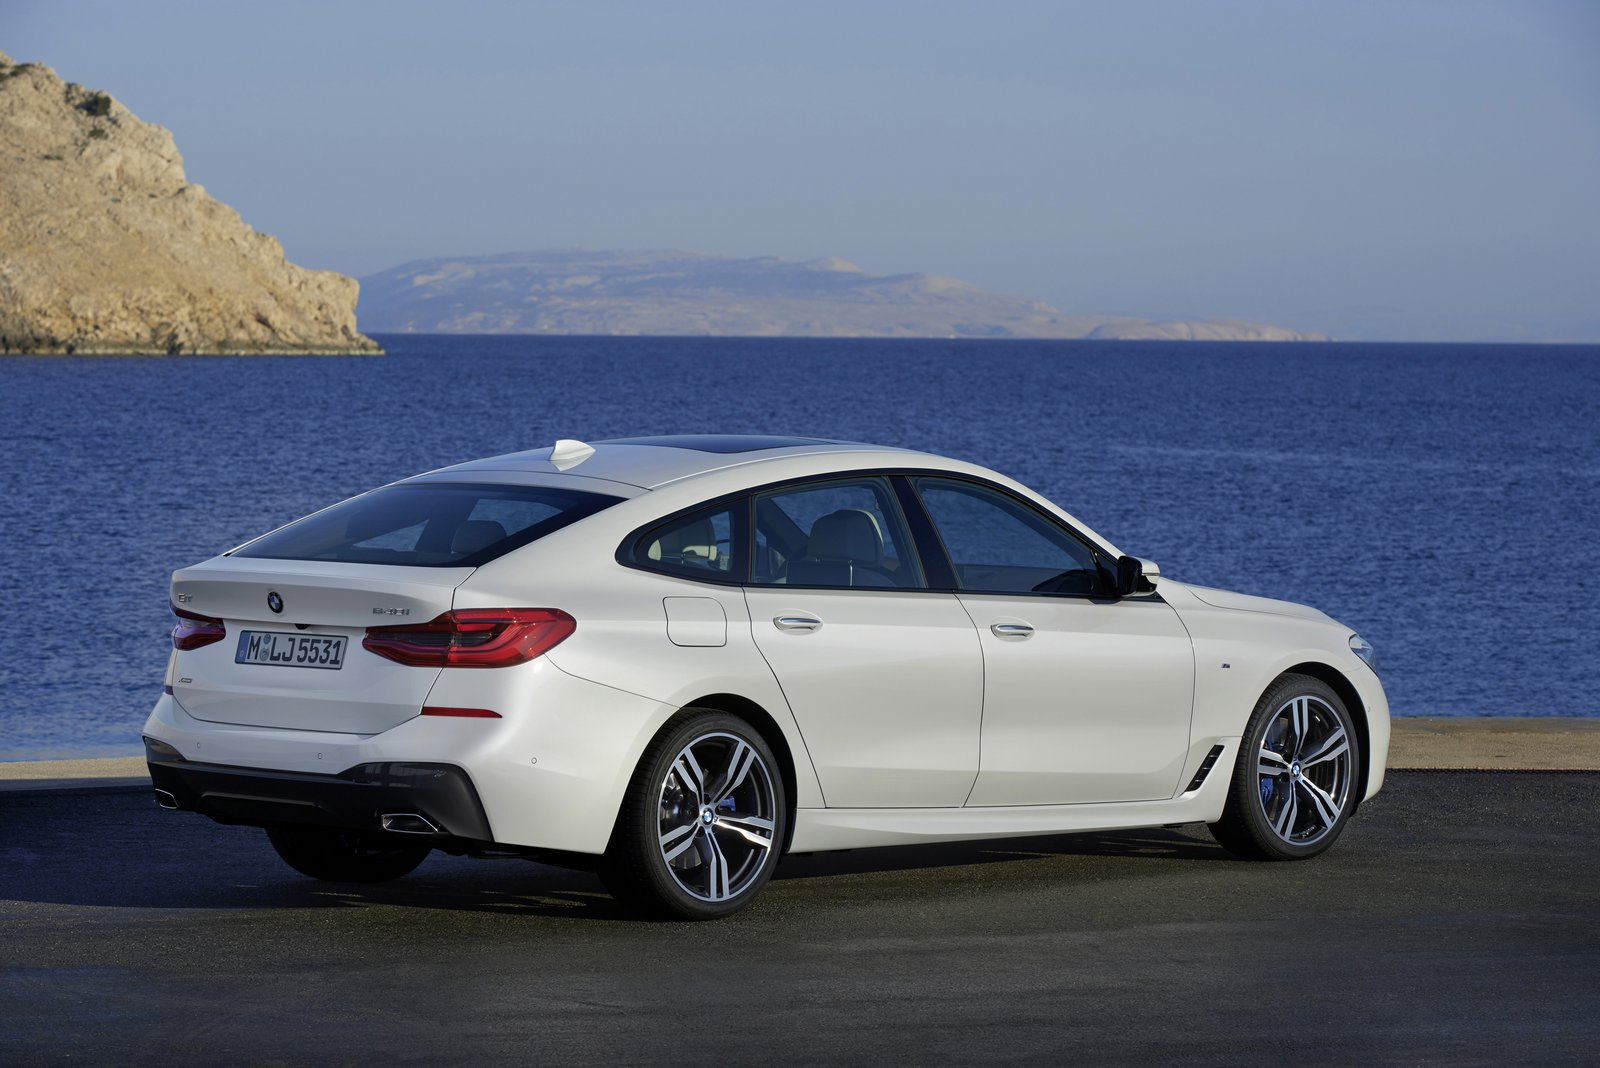 2018 bmw 6 series gran turismo officially debuts 640i gt. Black Bedroom Furniture Sets. Home Design Ideas